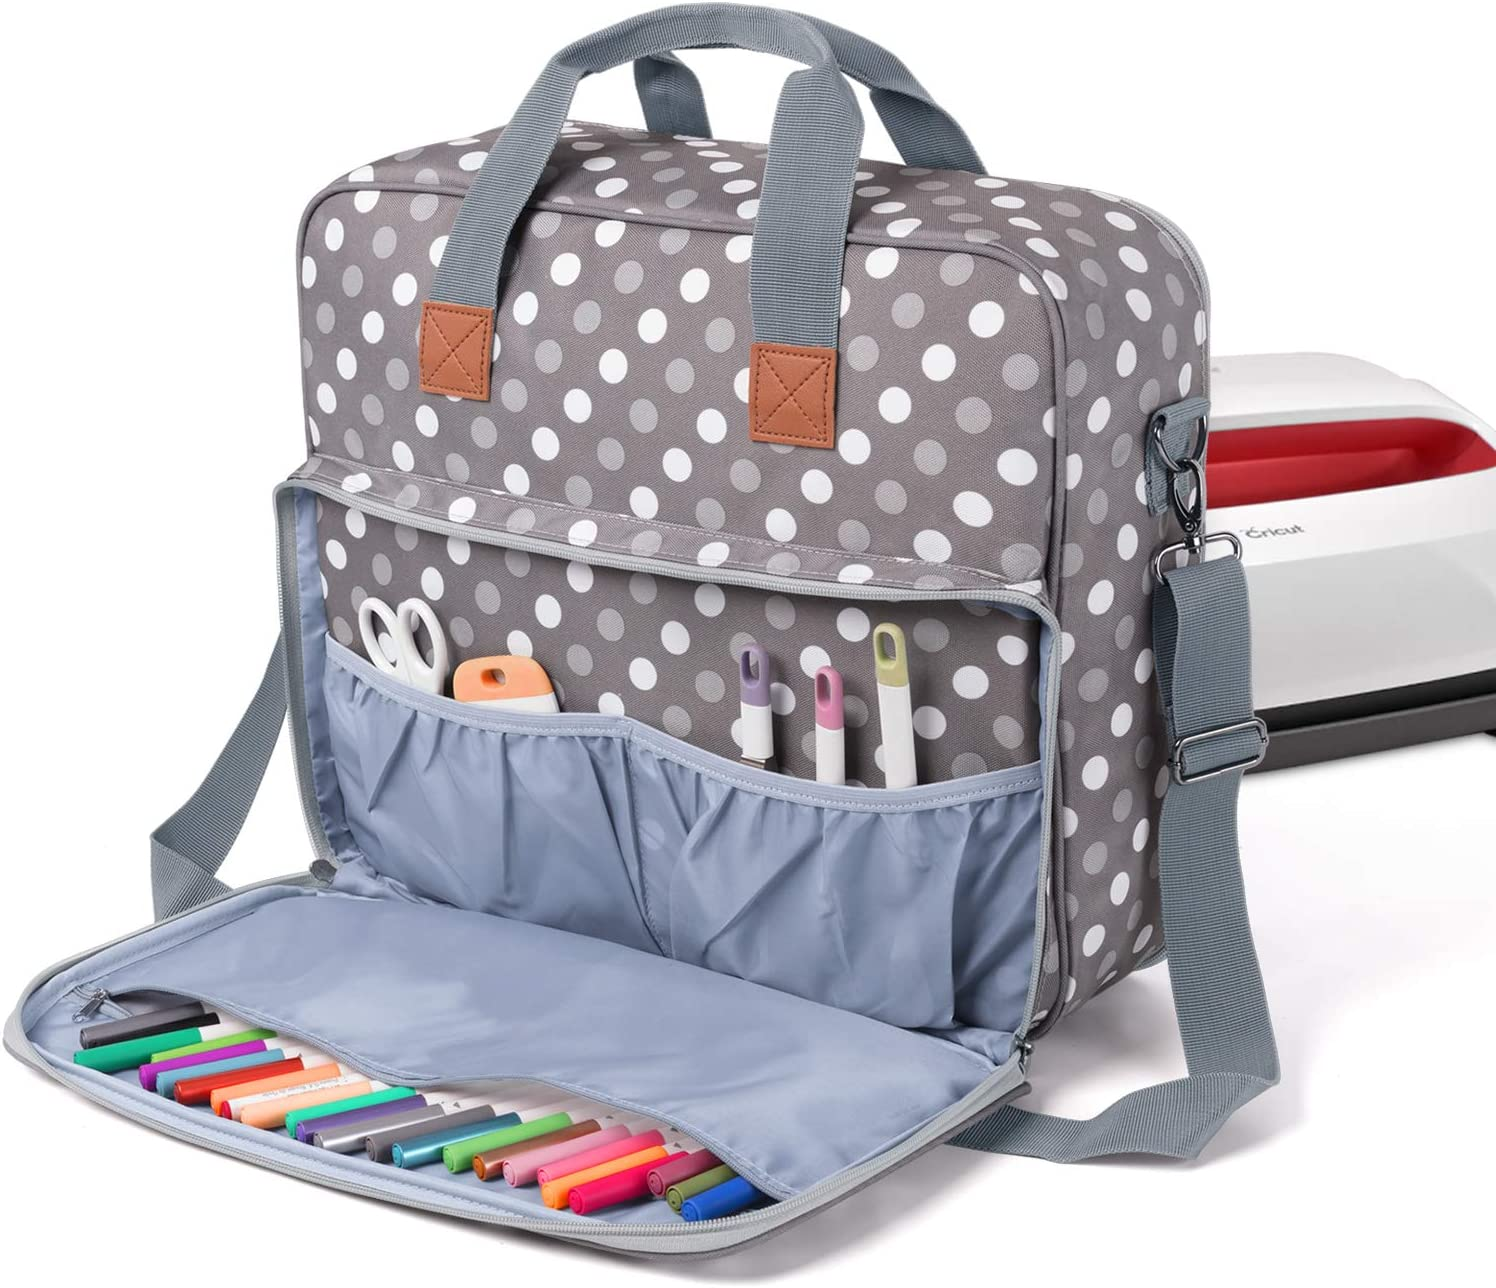 Luxja wholesale Carrying Case for Cricut Easy Press Ba Inexpensive 2 Tote x 12